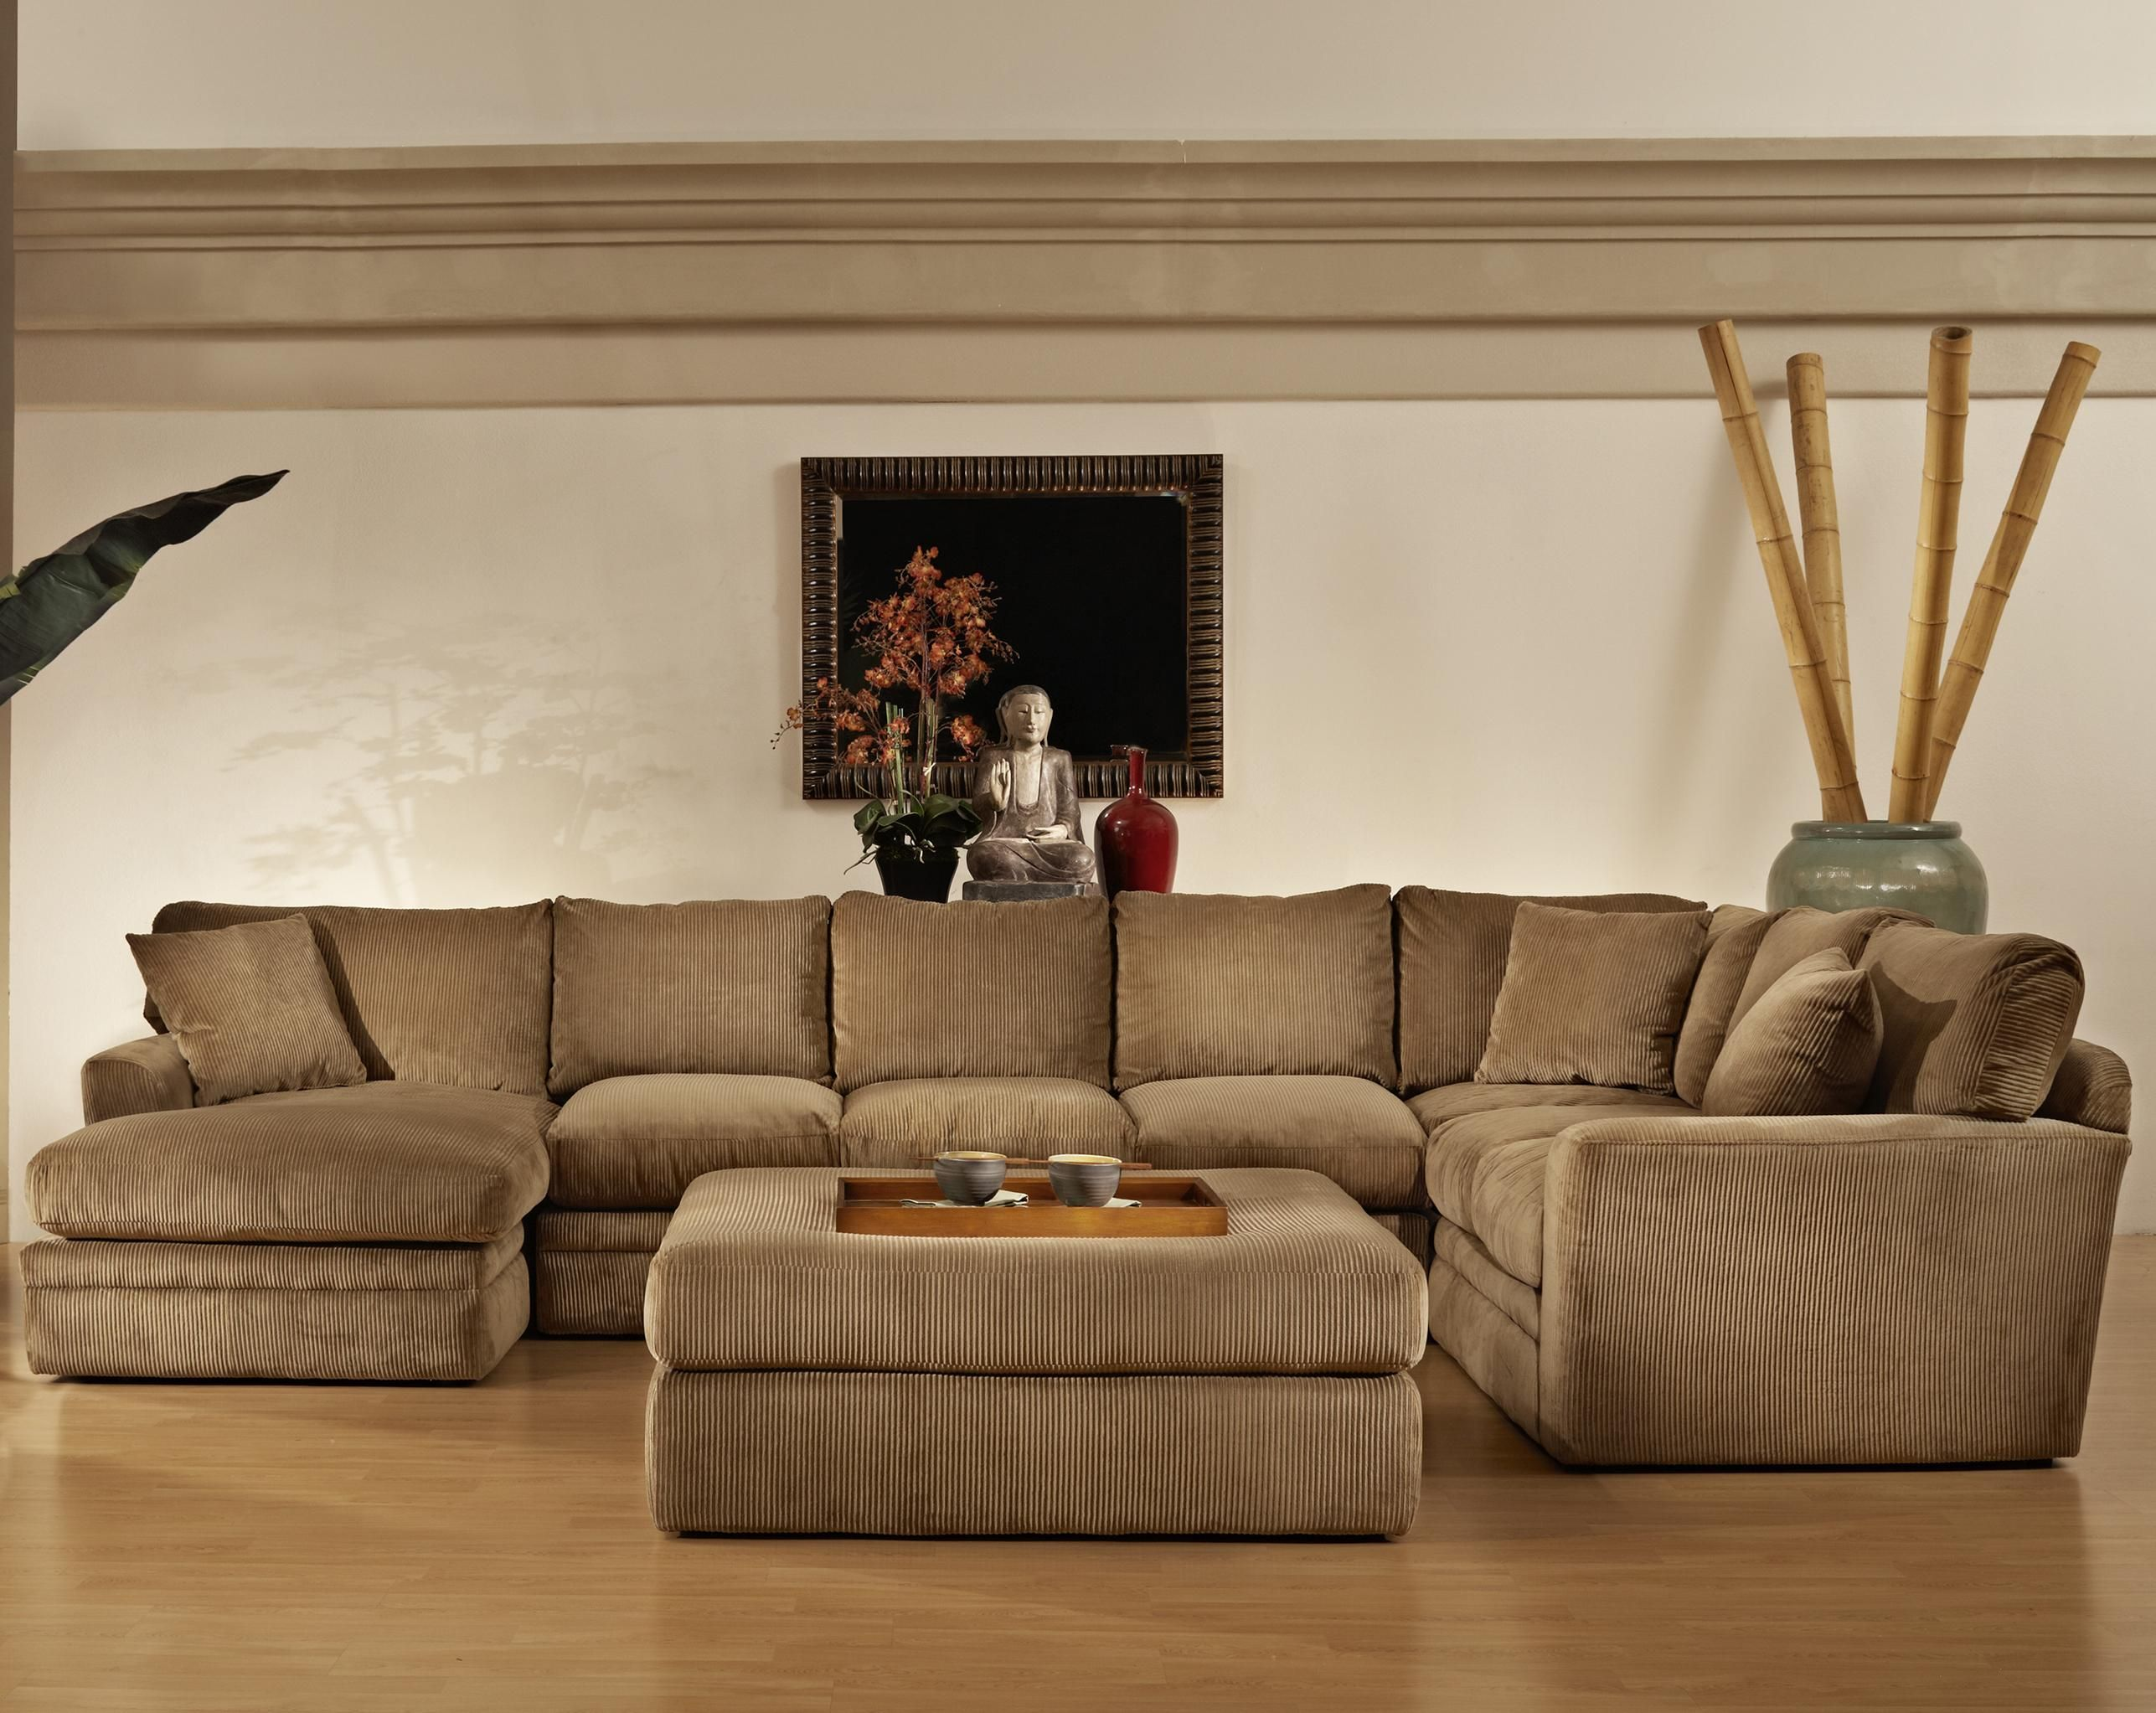 Klassische Sofas You Can Assemble Statue Of The Most Comfortable Couch Furniture Sofa Living